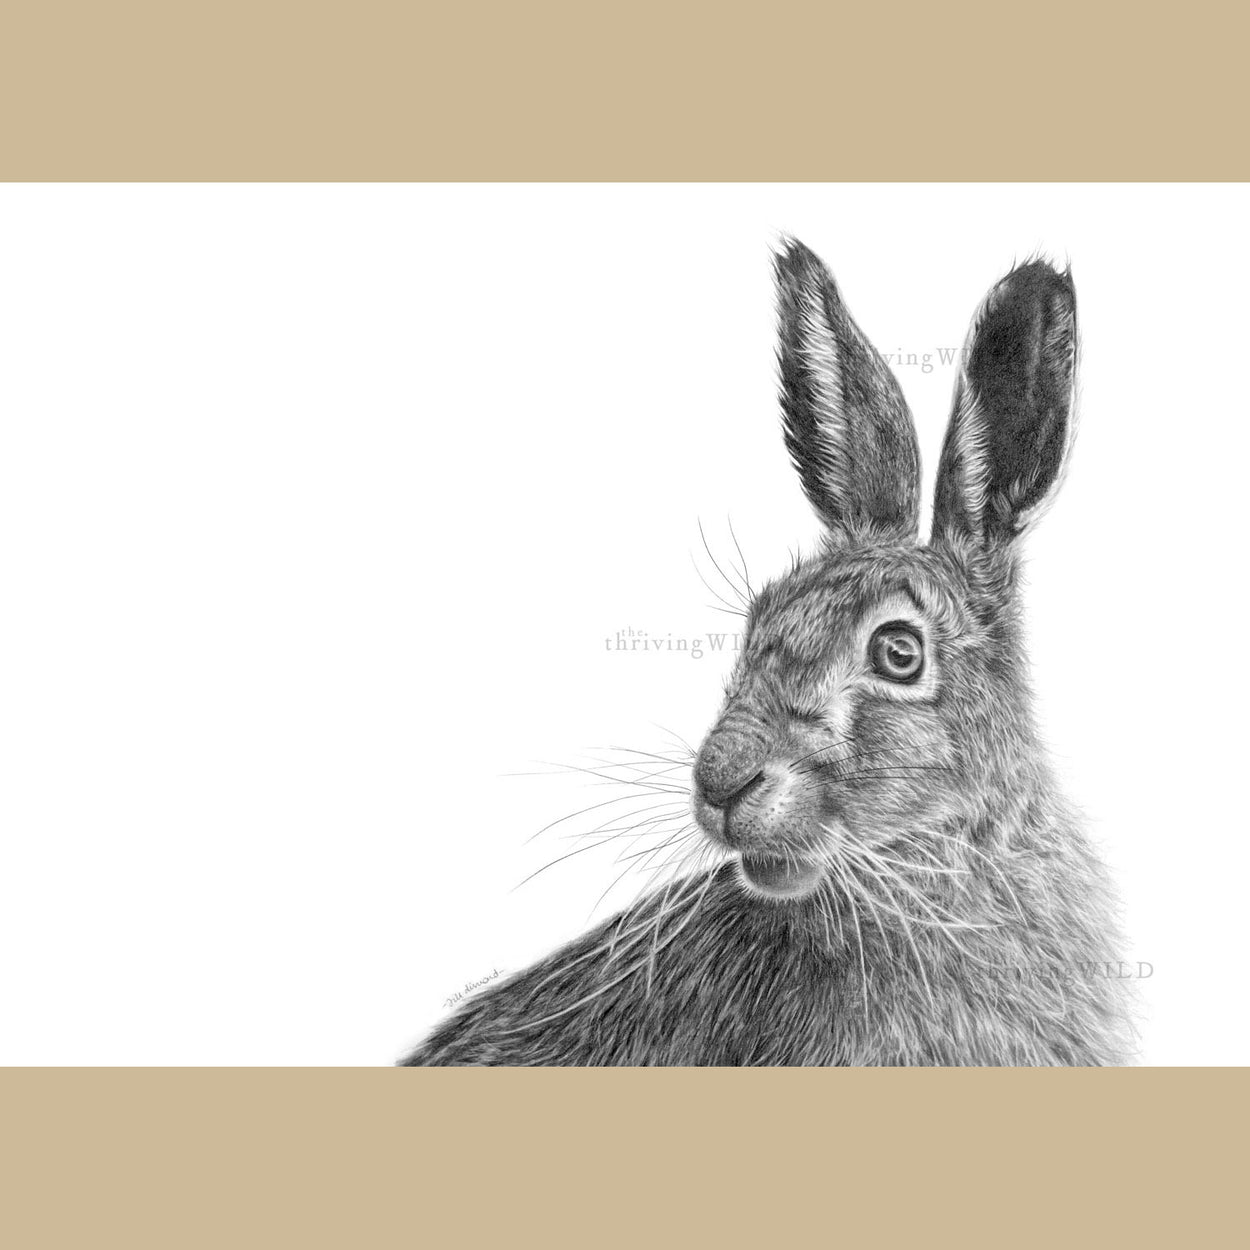 Hare Pencil Drawing Art Print - The Thriving Wild - Jill Dimond